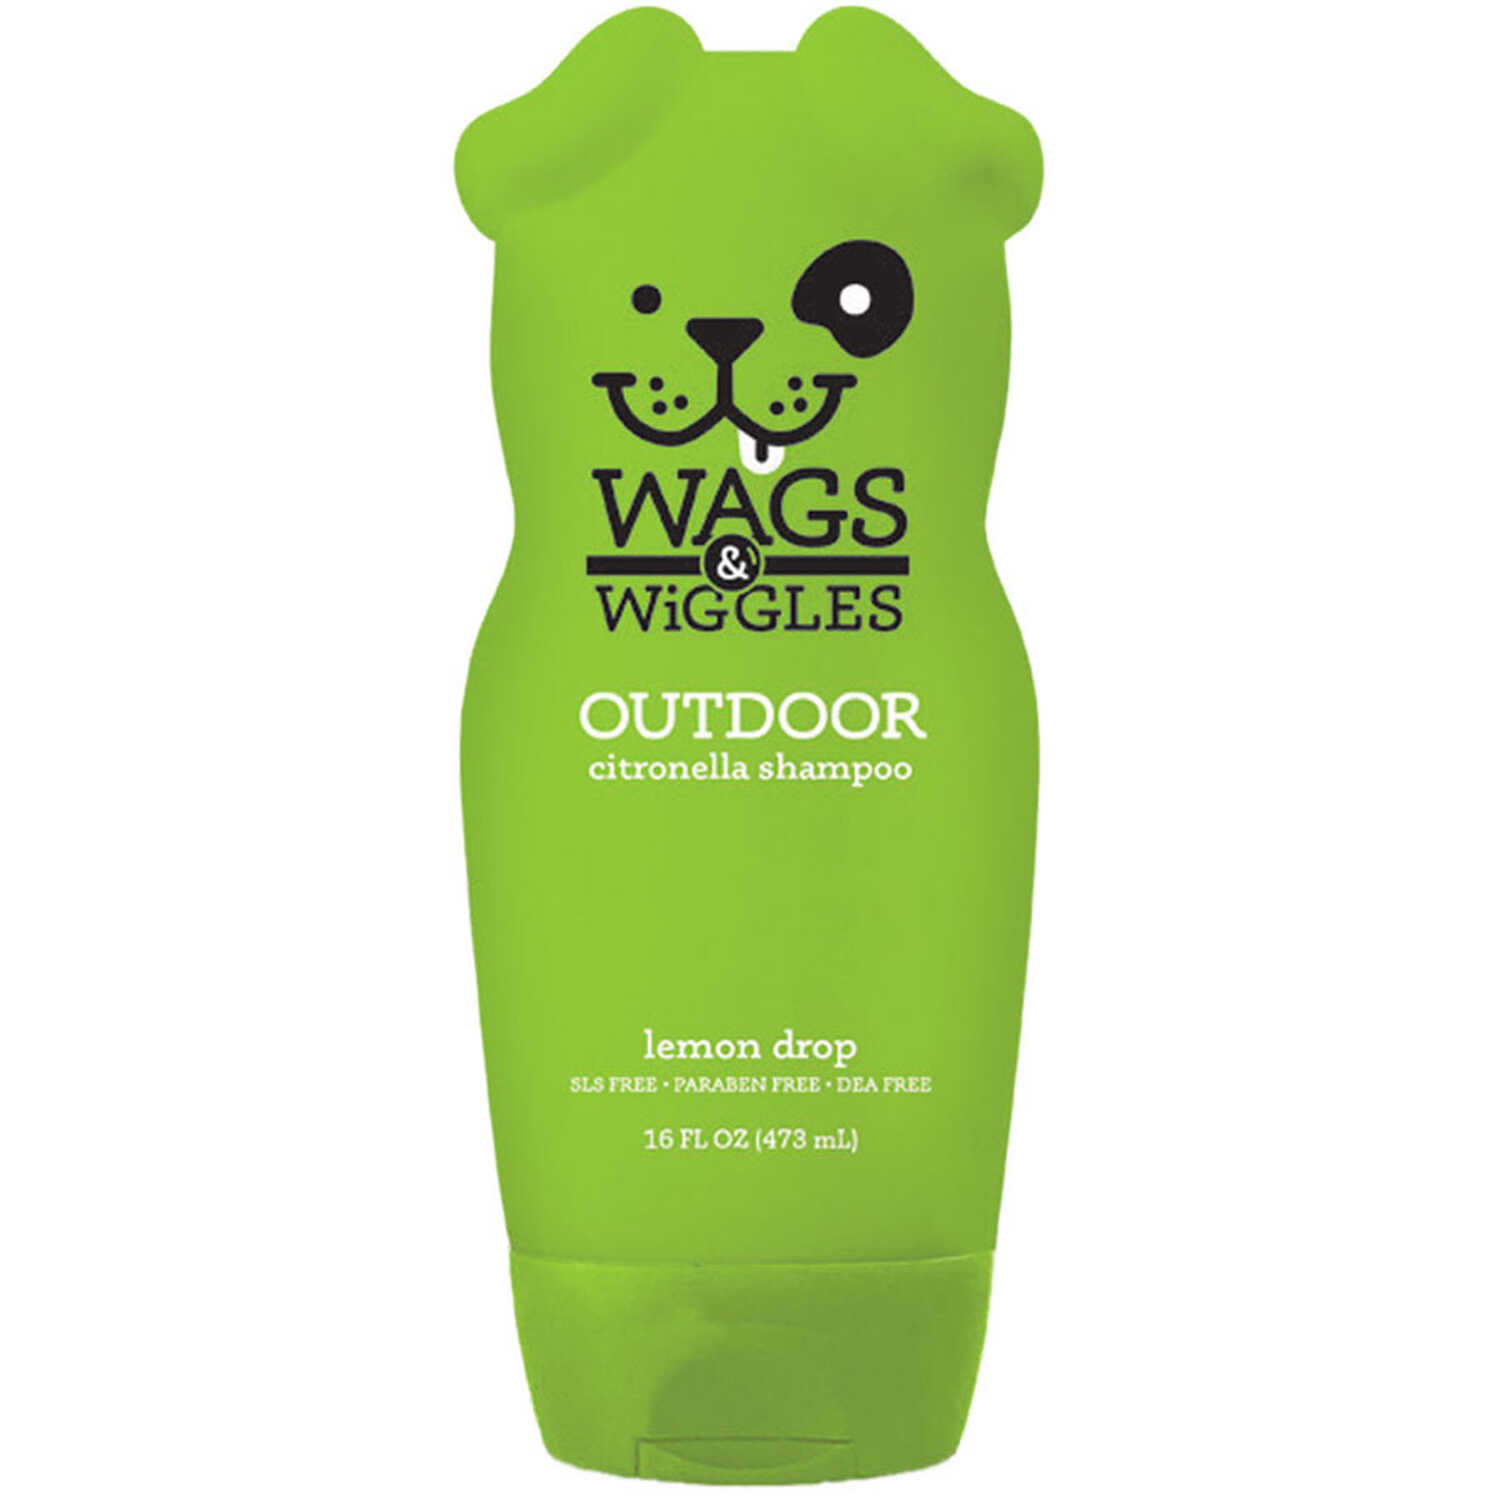 Fetch - Wags & Wiggles  Fetch  For Dog Green  Citronella Shampoo  16 oz. 1 pk